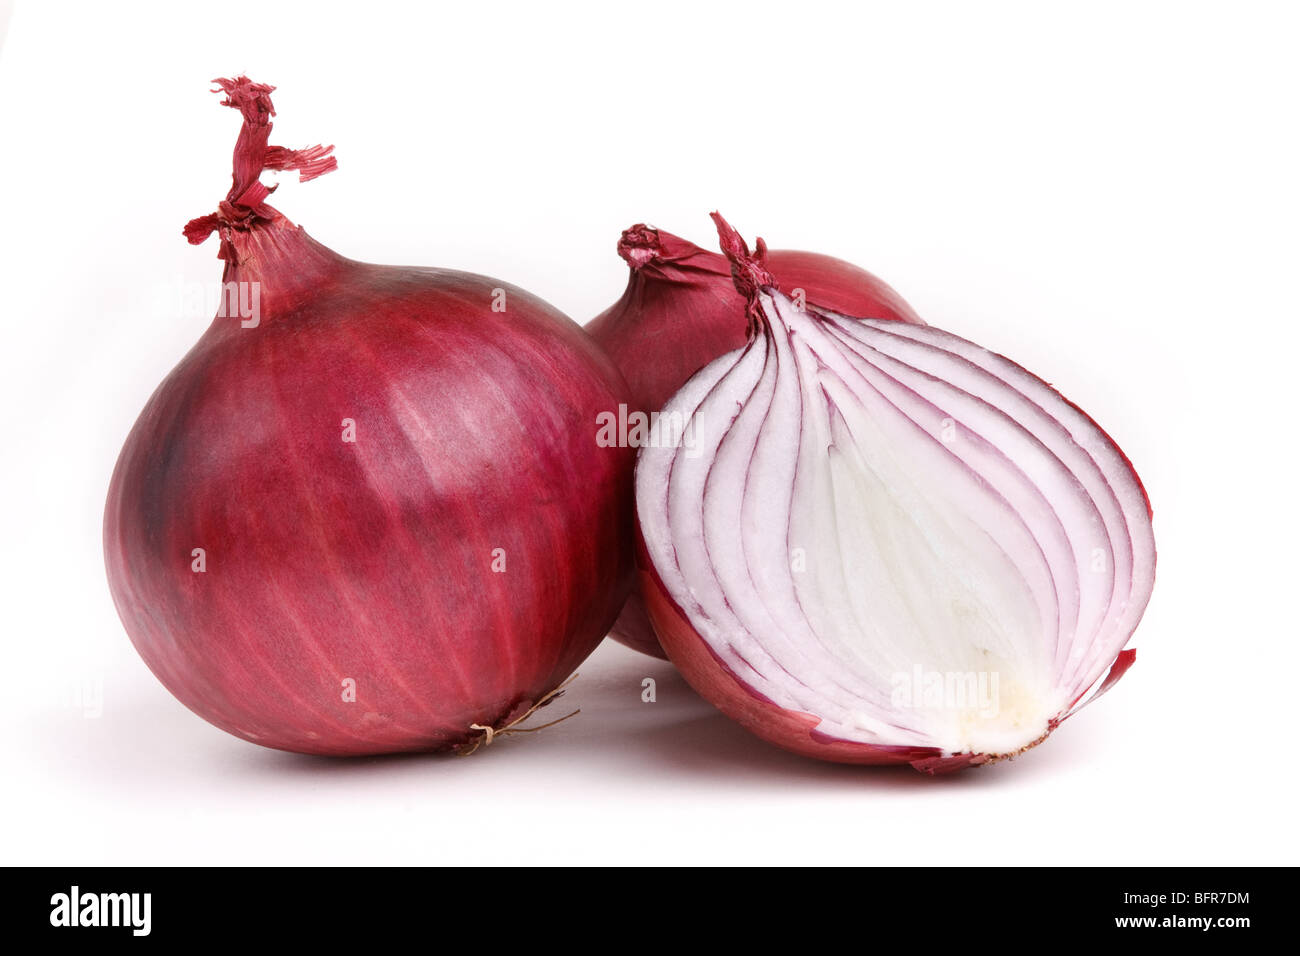 Red onions one sliced against white background. - Stock Image